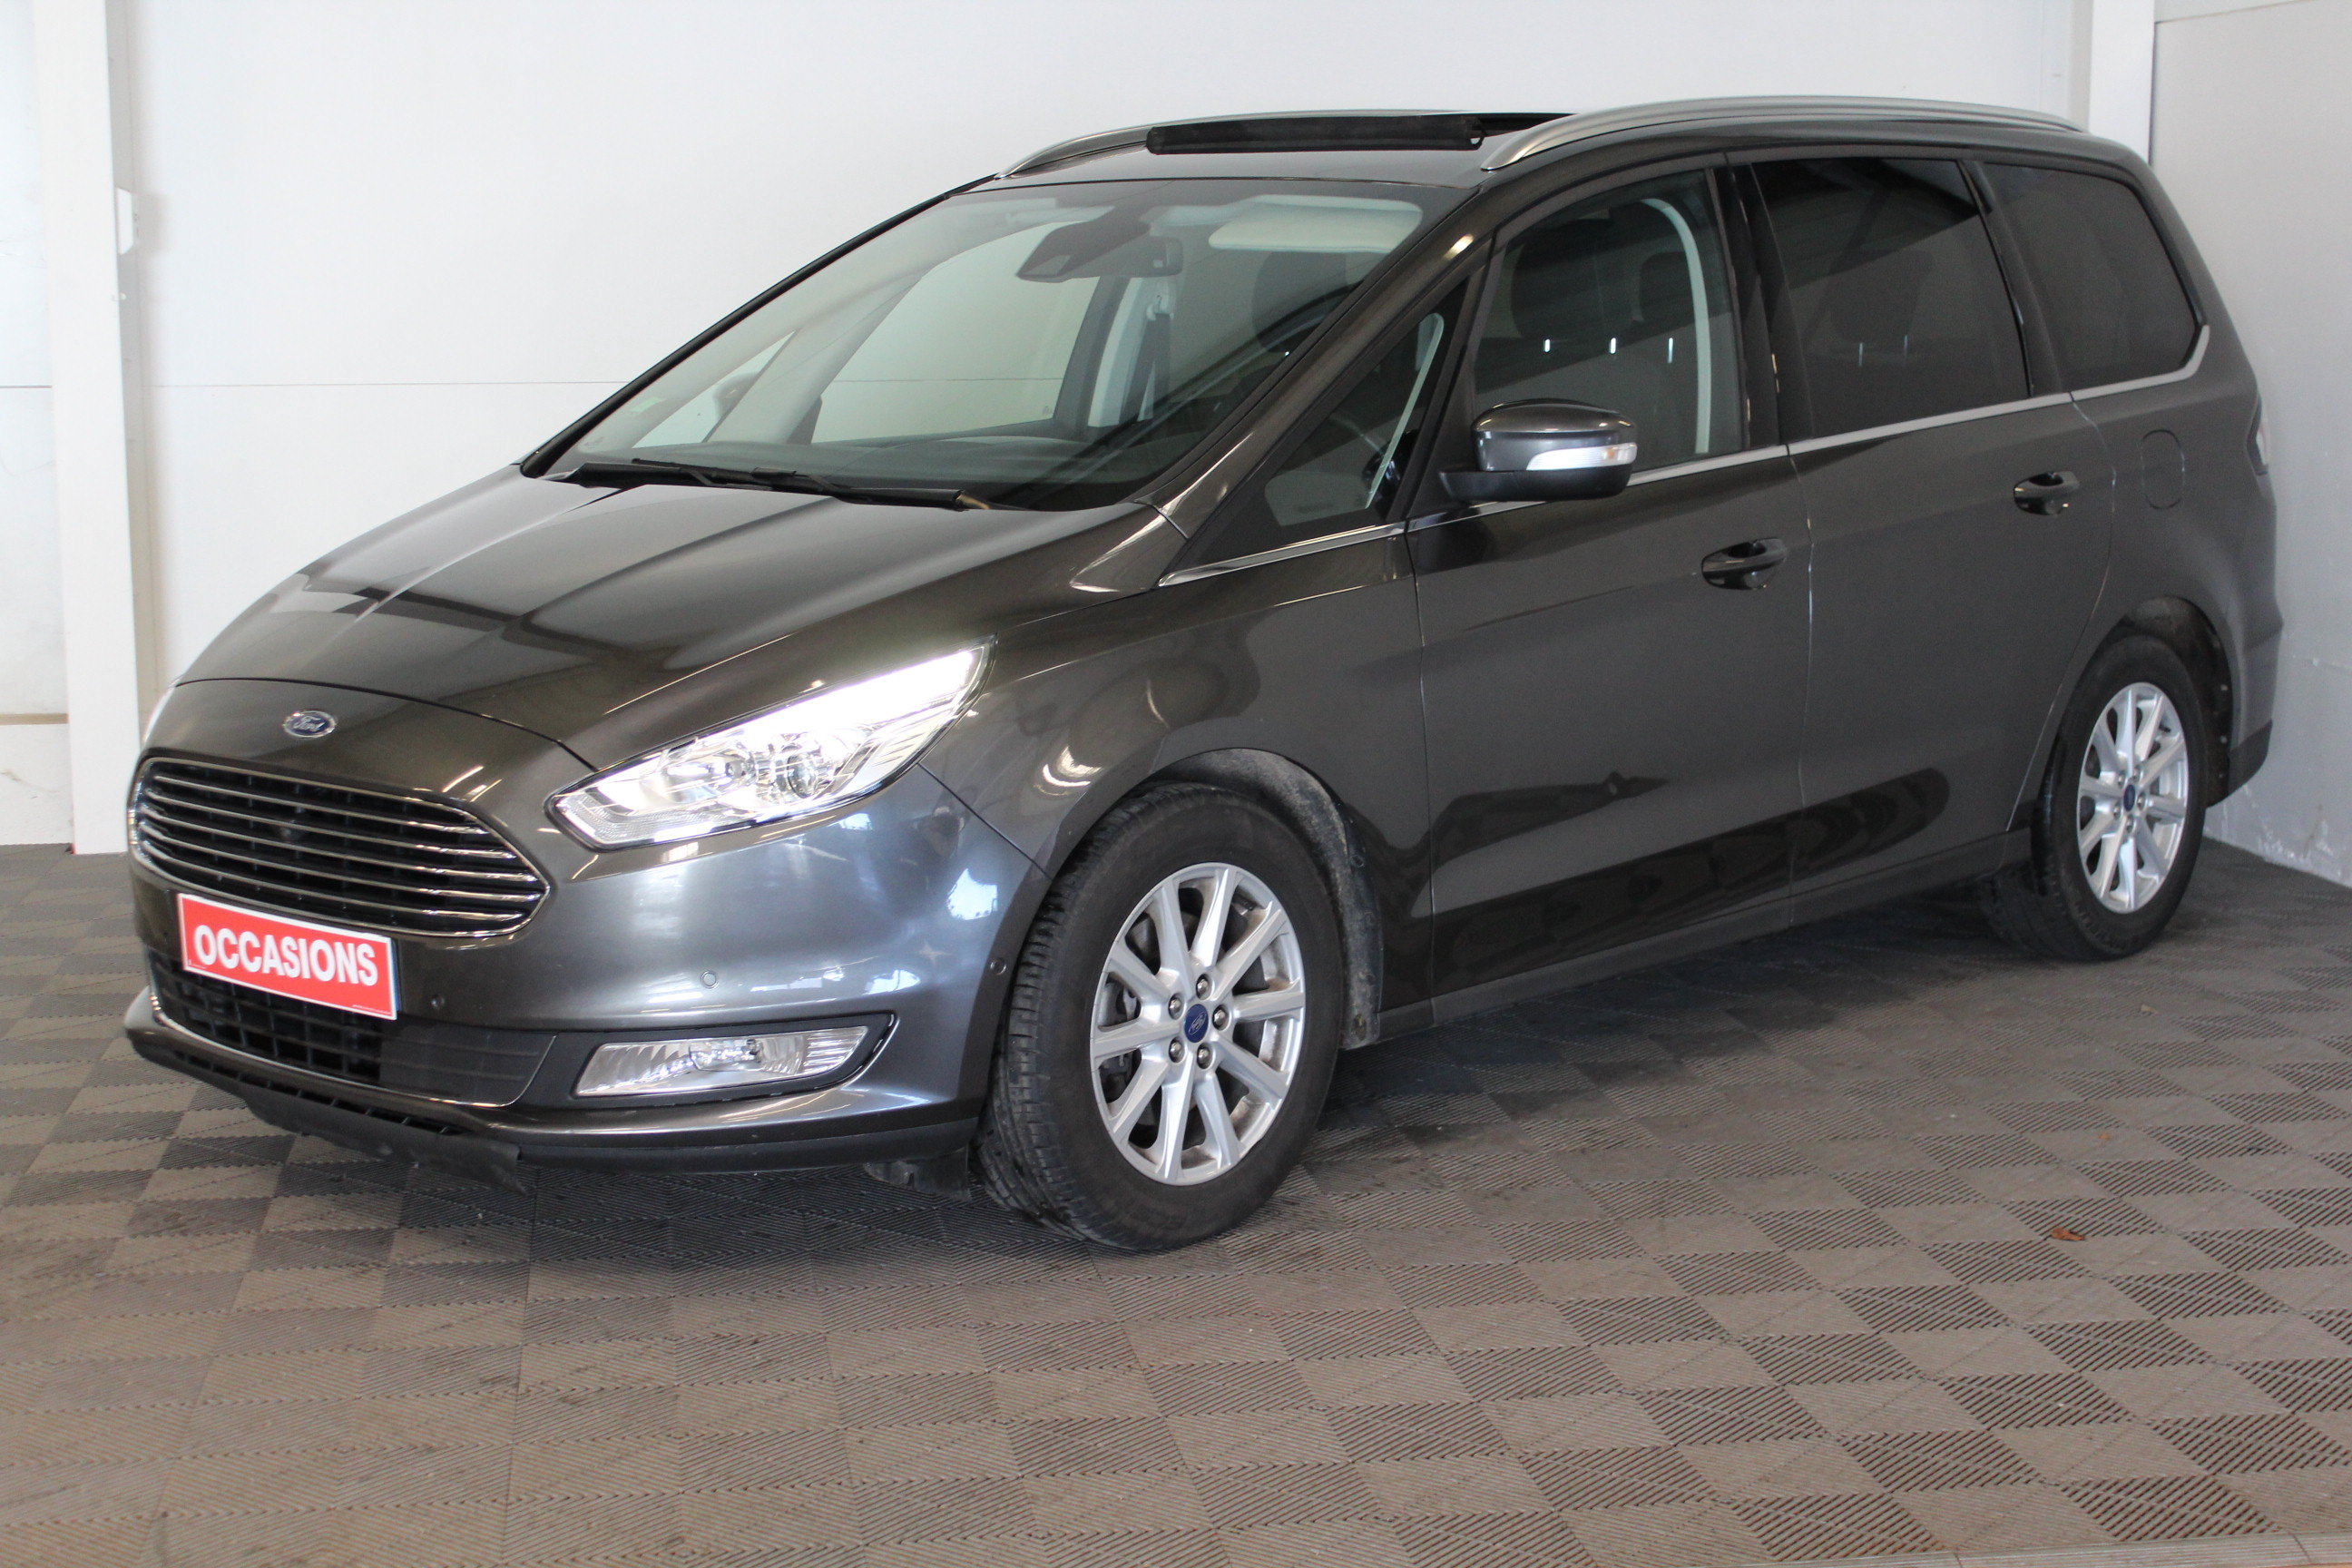 FORD GALAXY 2.0 TDCI 150 S&S Powershift Titanium d'occasion